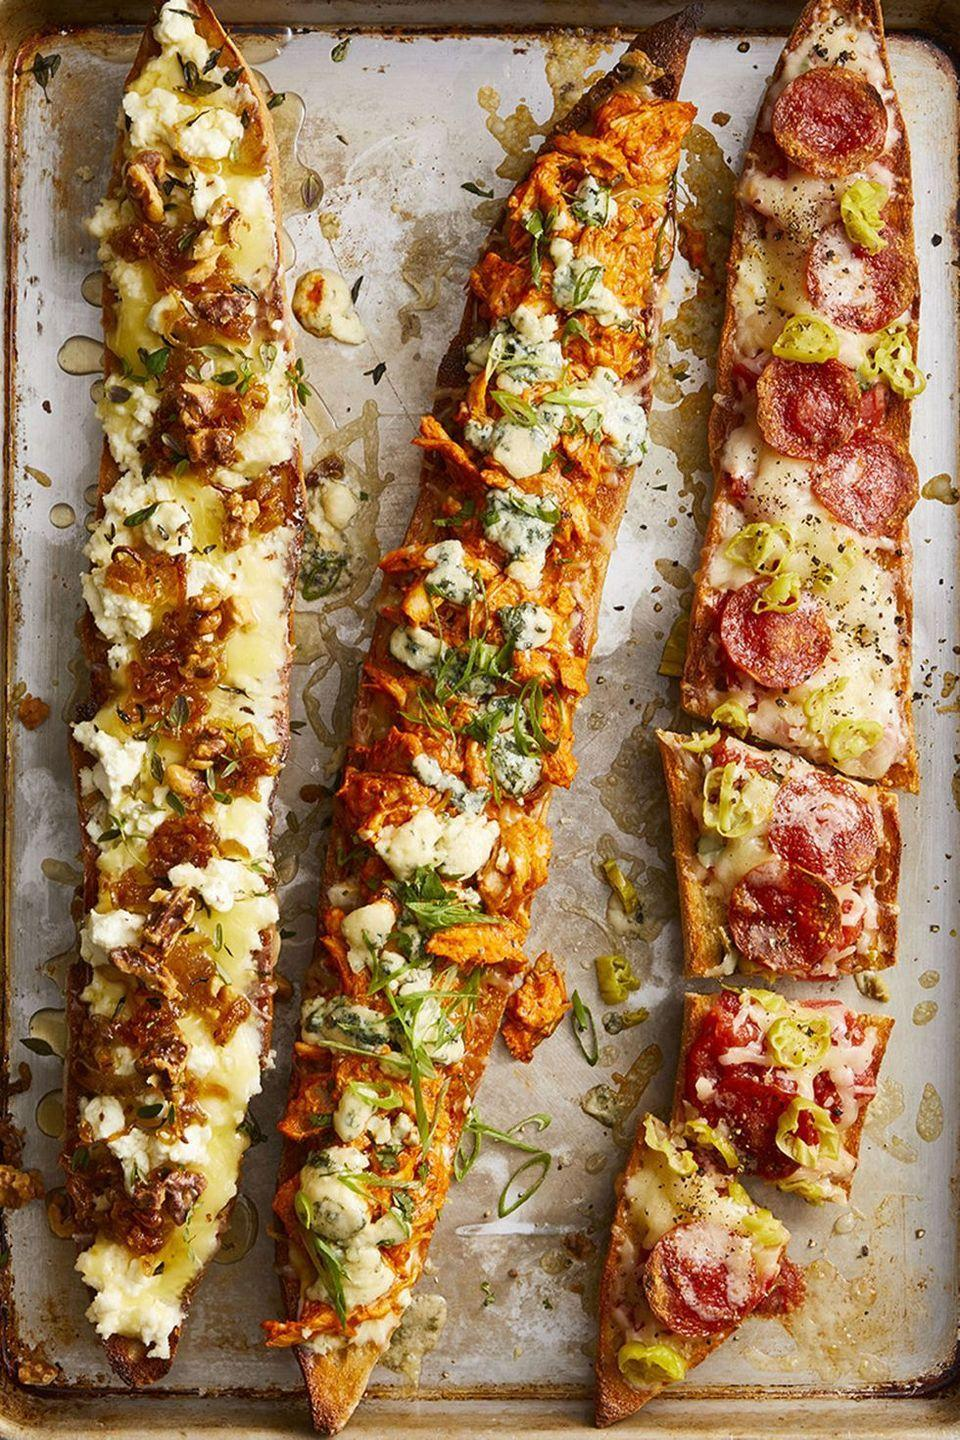 """<p>Skip your ordinary sandwich and bake leftover turkey, hot sauce, cheese and ranch dressing onto the baguette, instead. </p><p><em><a href=""""https://www.goodhousekeeping.com/food-recipes/easy/a47670/baguette-pizza-recipe/"""" rel=""""nofollow noopener"""" target=""""_blank"""" data-ylk=""""slk:Get the recipe for Buffalo Turkey Baguette Pizzas »"""" class=""""link rapid-noclick-resp"""">Get the recipe for Buffalo Turkey Baguette Pizzas »</a></em></p>"""